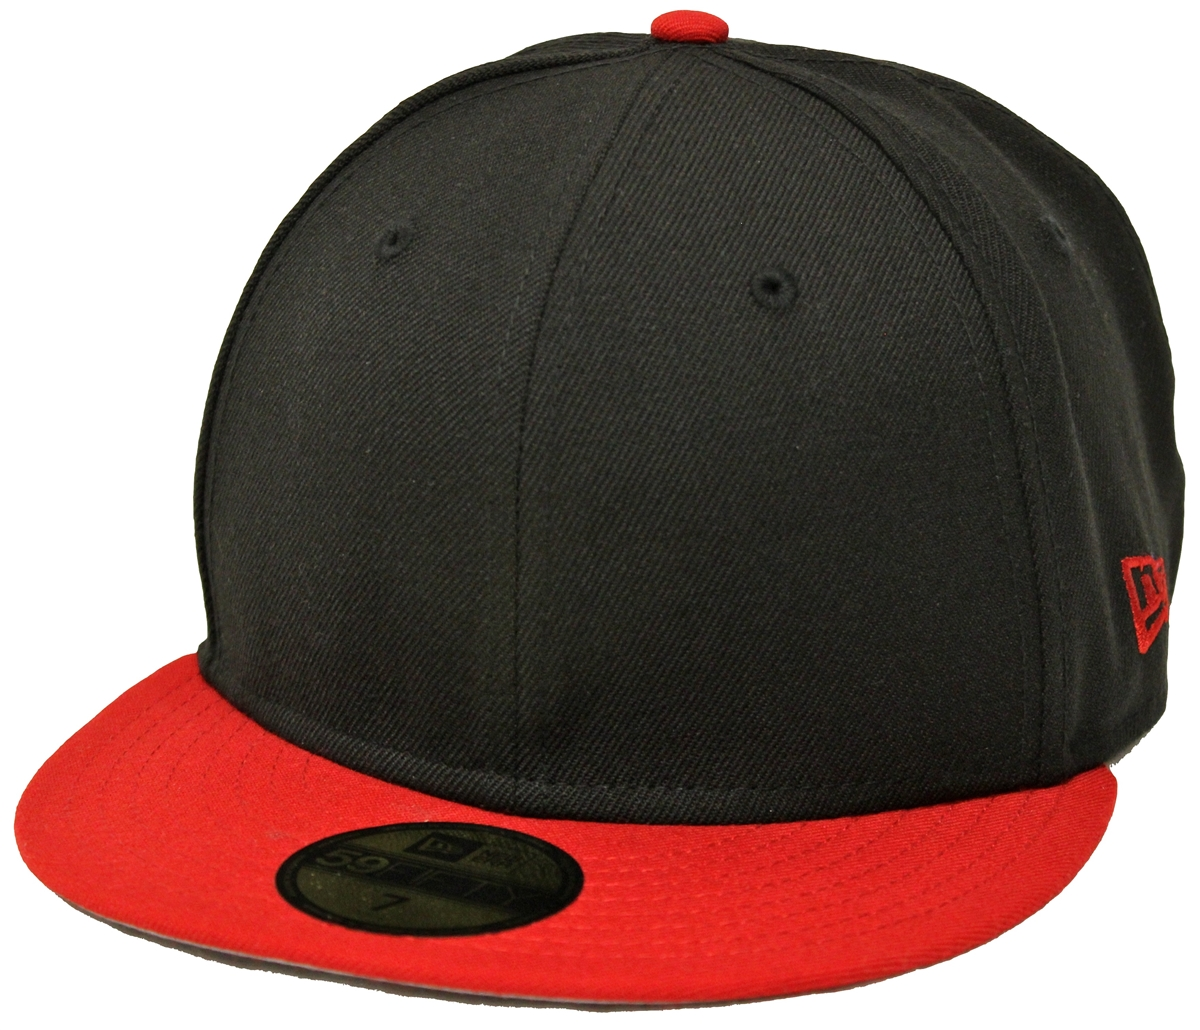 New Era 59Fifty Plain Black Red Fitted Cap Blank 2 Tone Gray ... c341c2a922e7